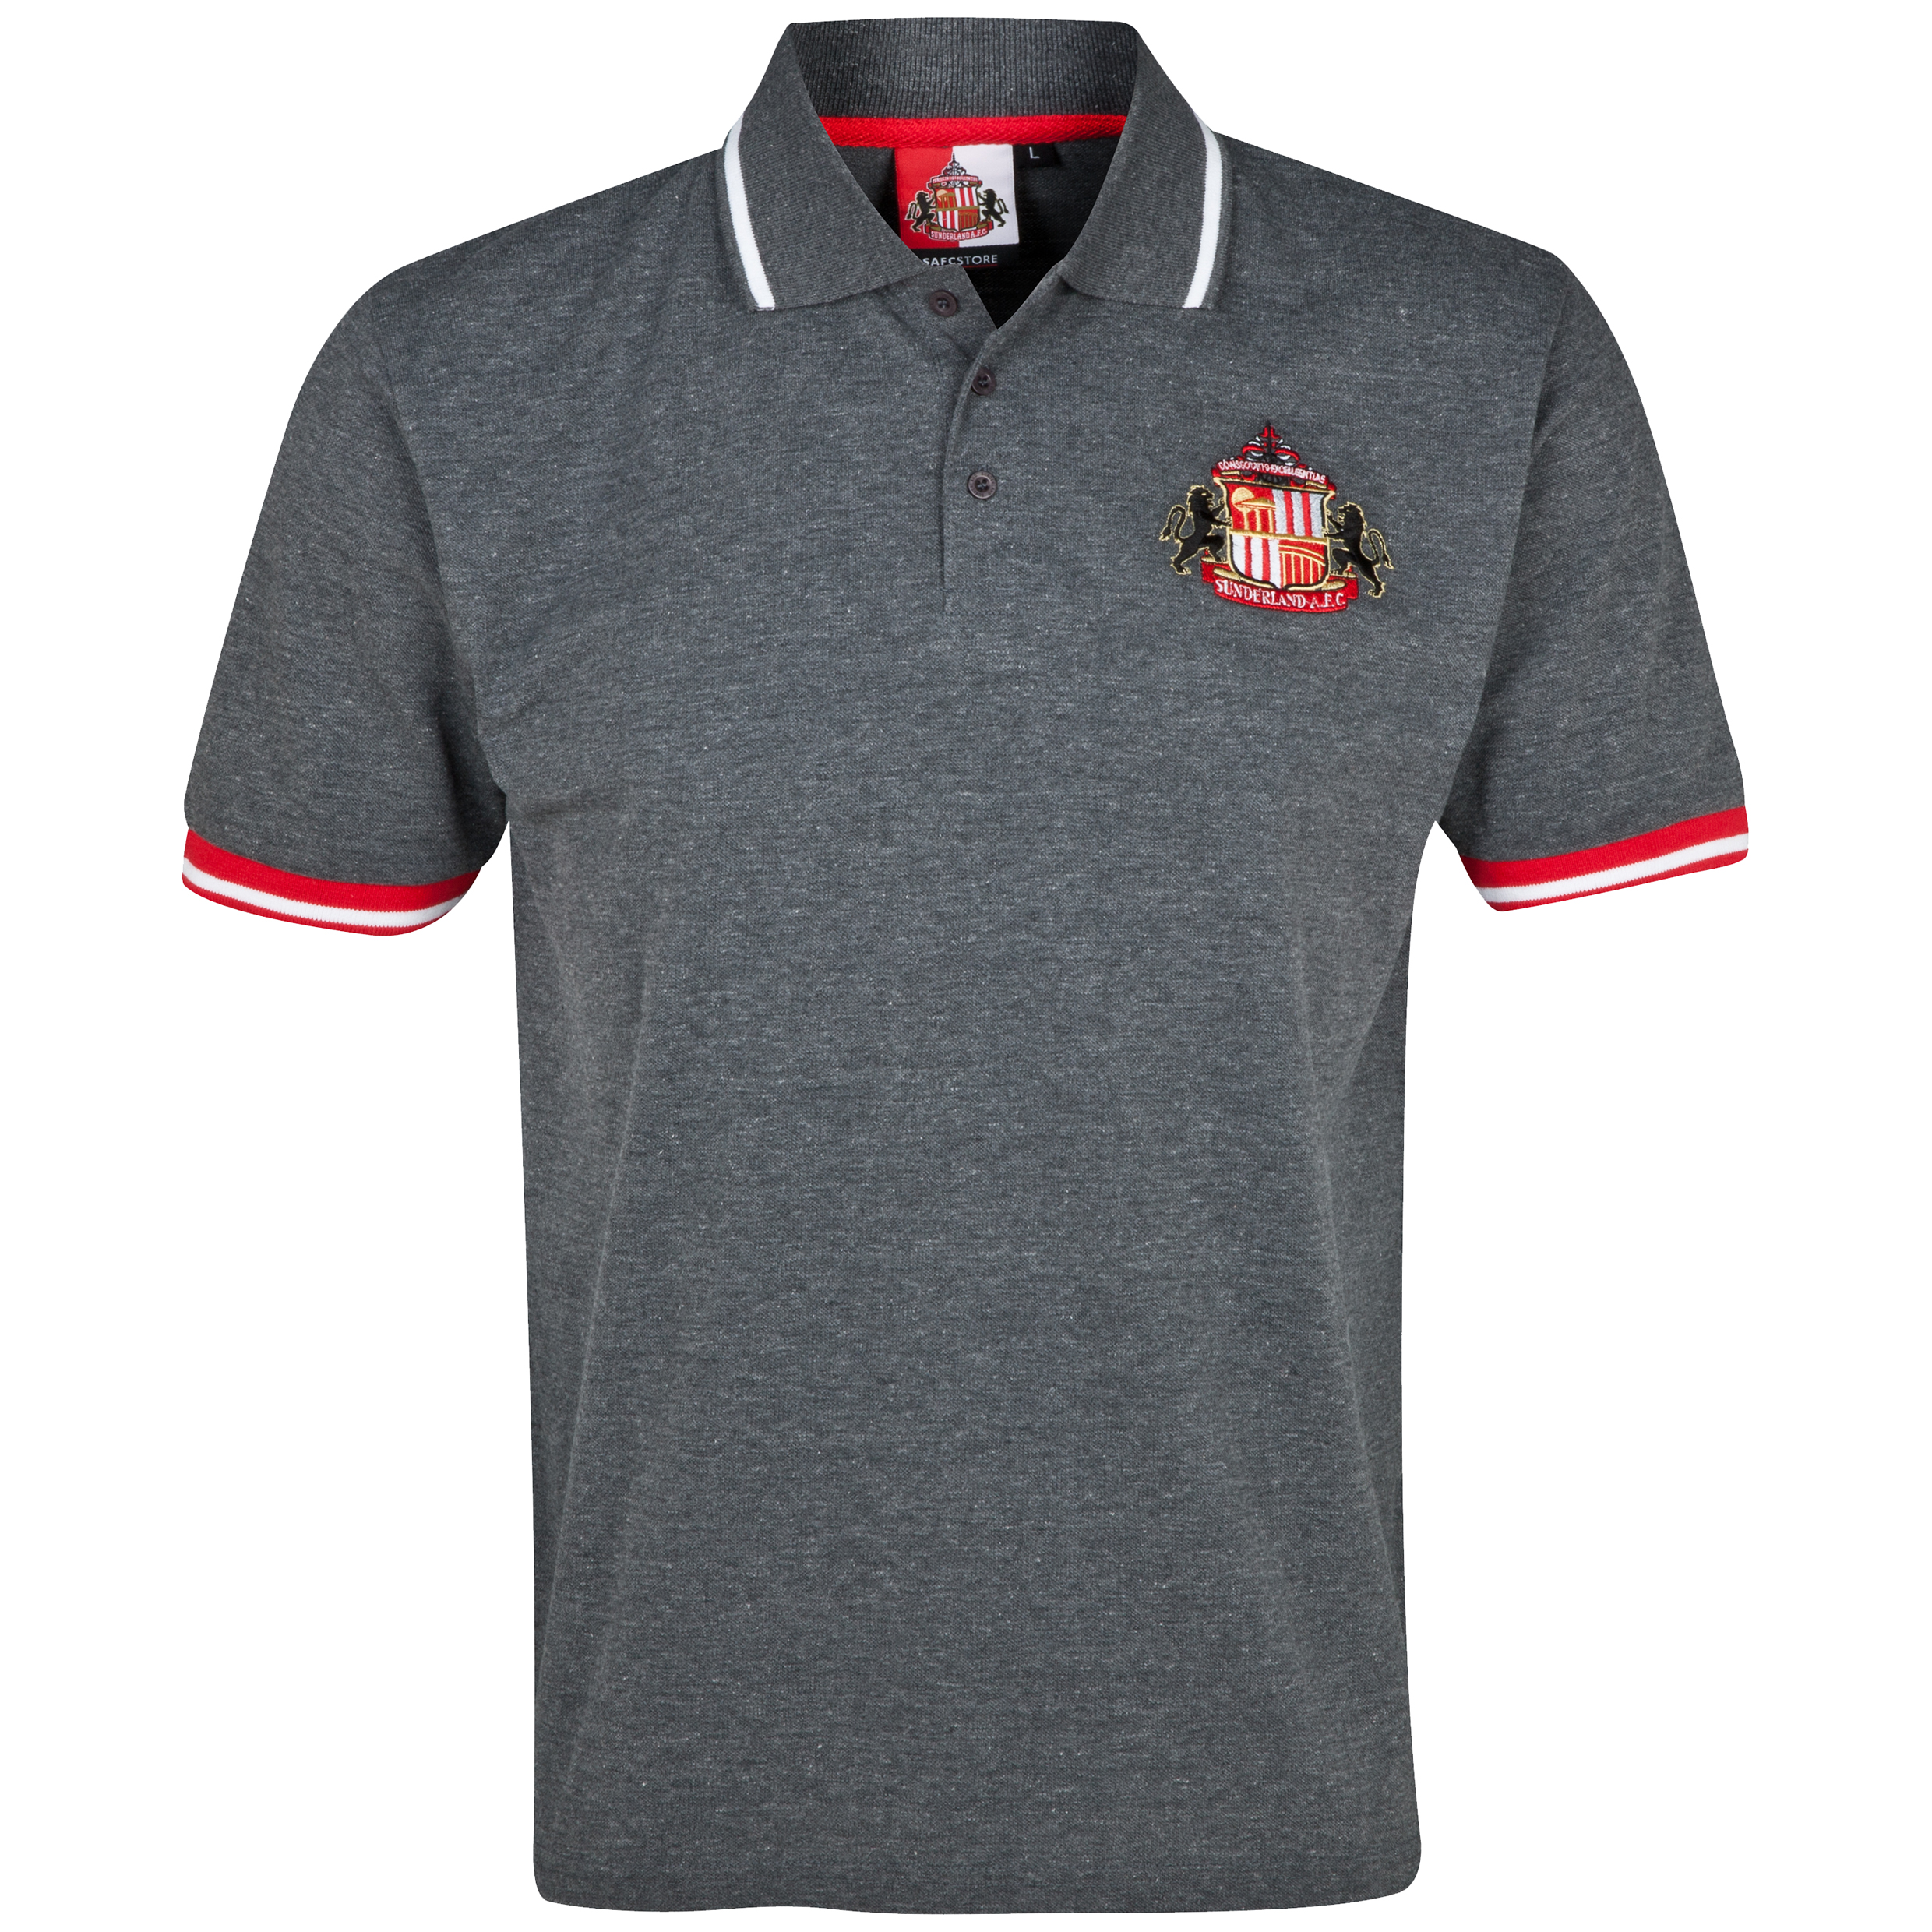 Sunderland Essentials Grounds Polo Shirt - Mens Charcoal